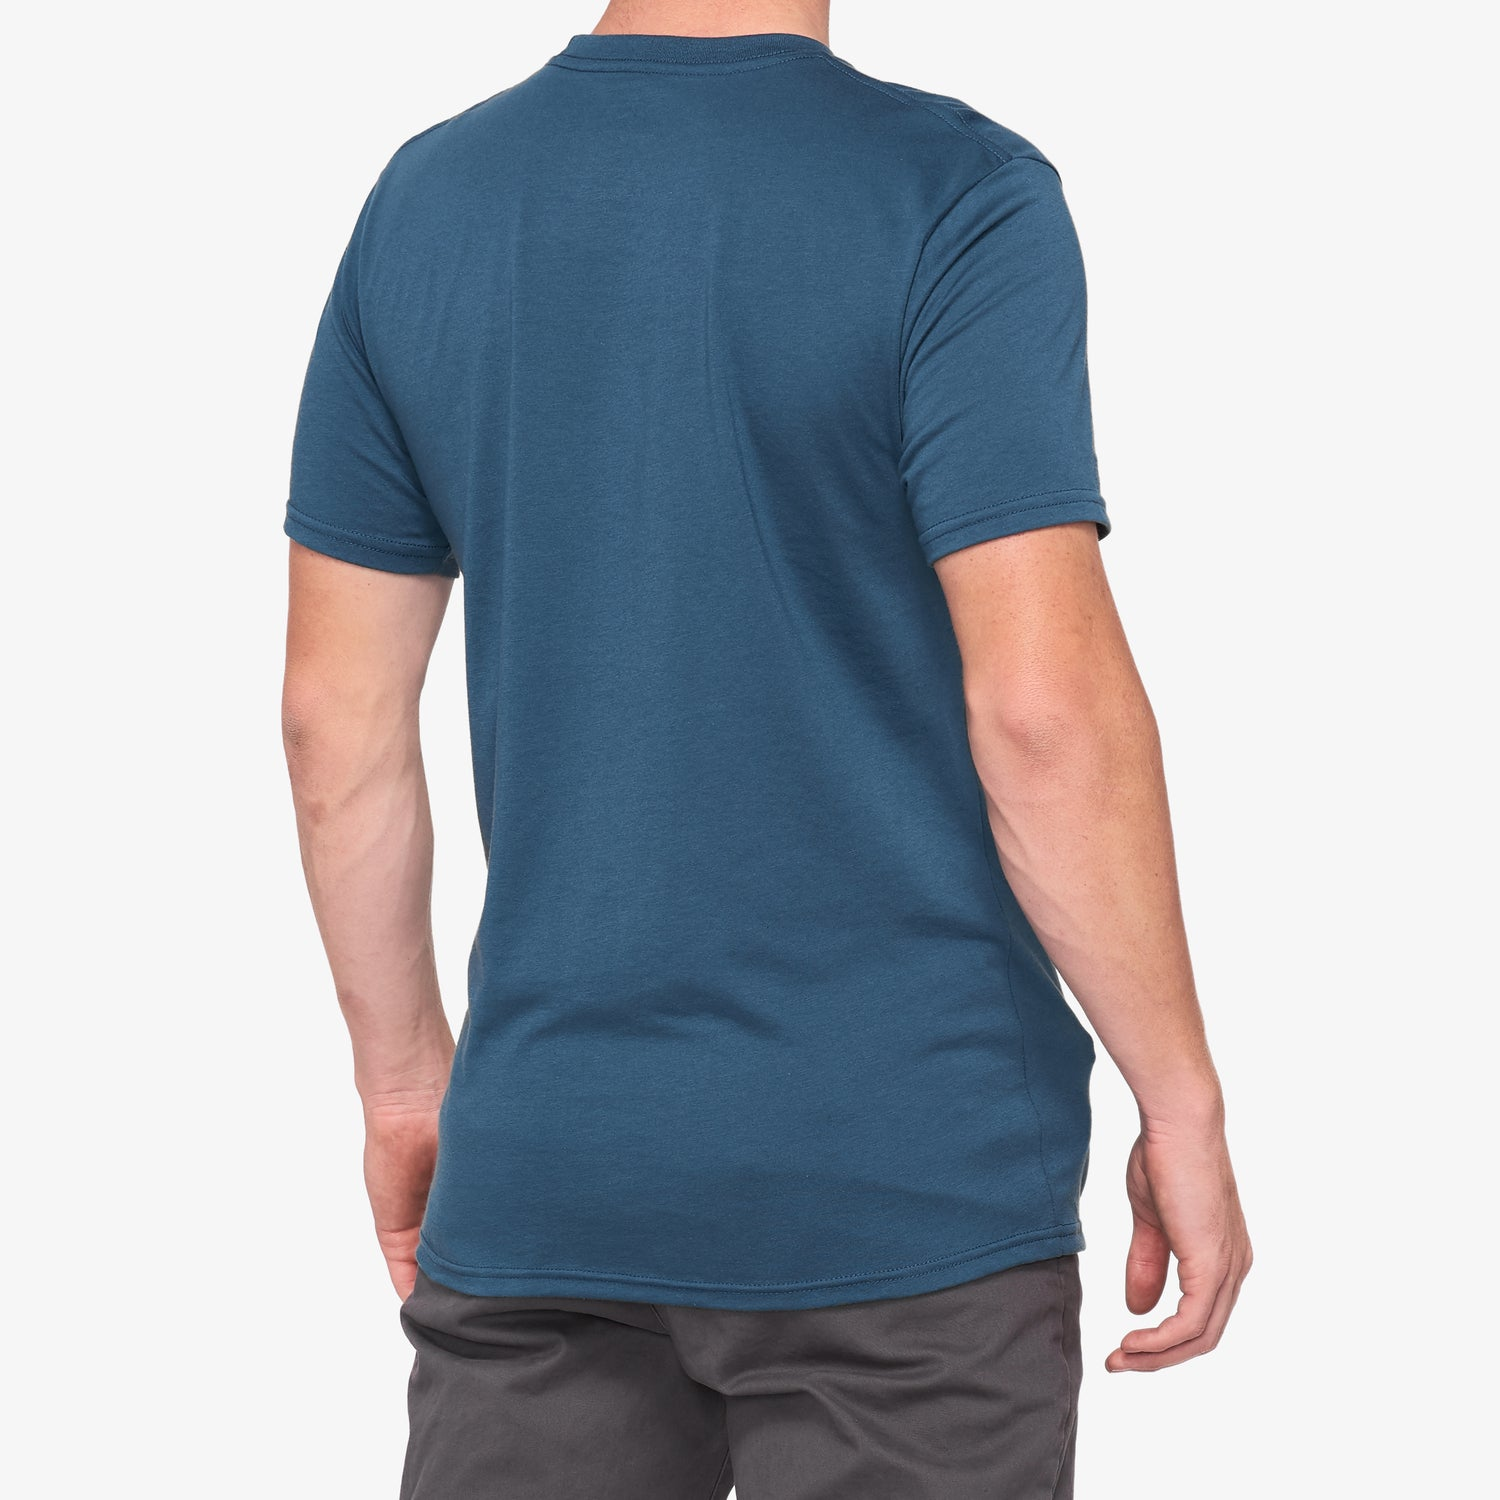 SECTOR T-shirt Slate Blue